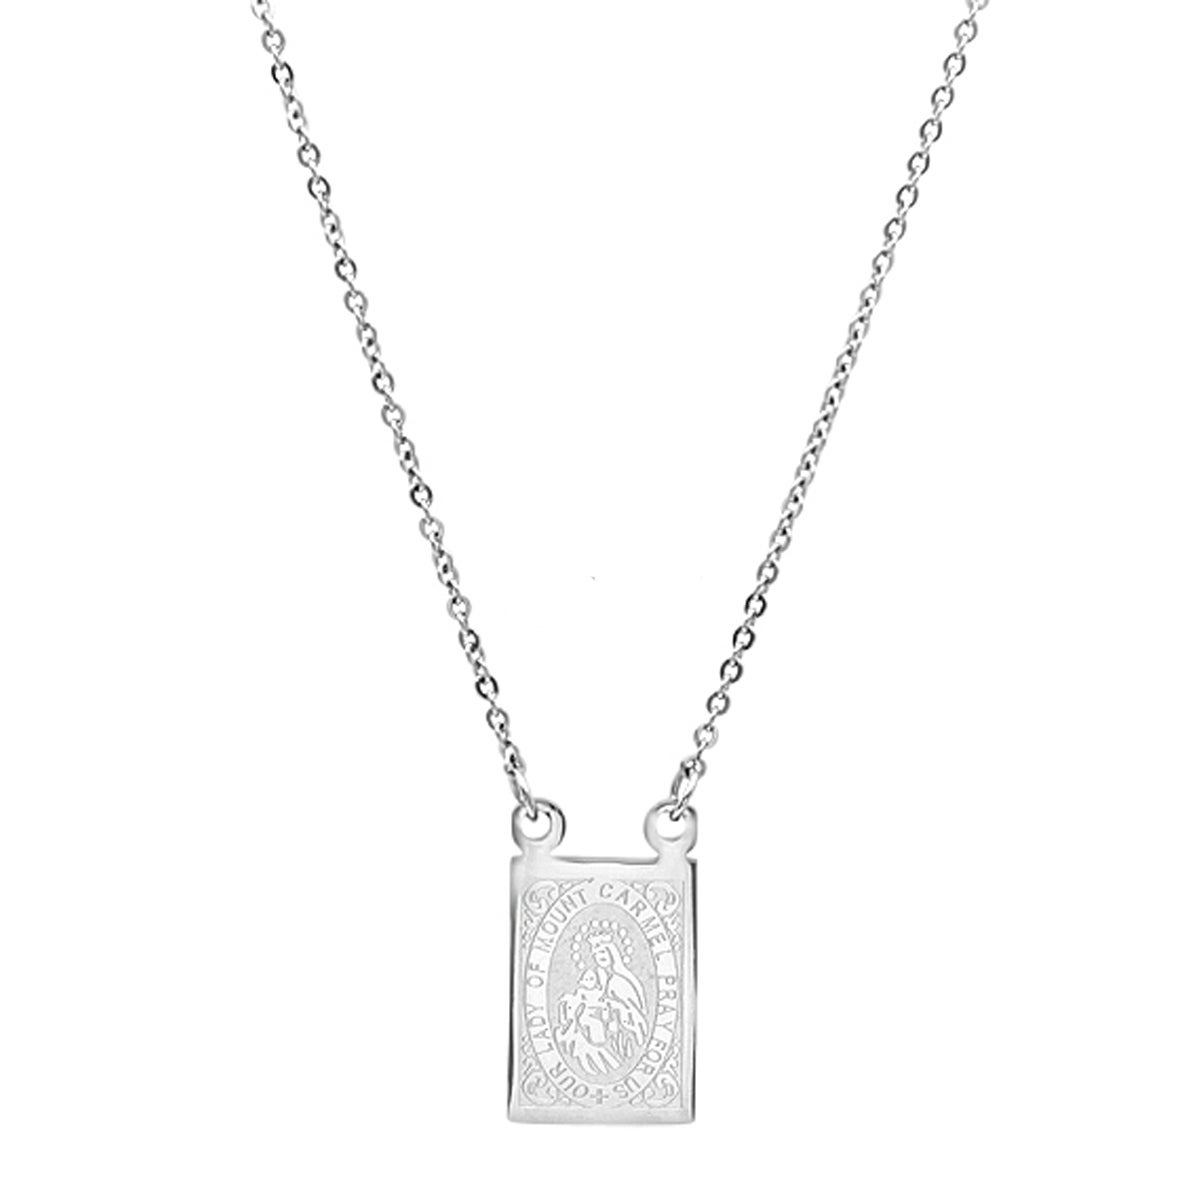 products eb necklace initial concierge scapular ring collections necklaces